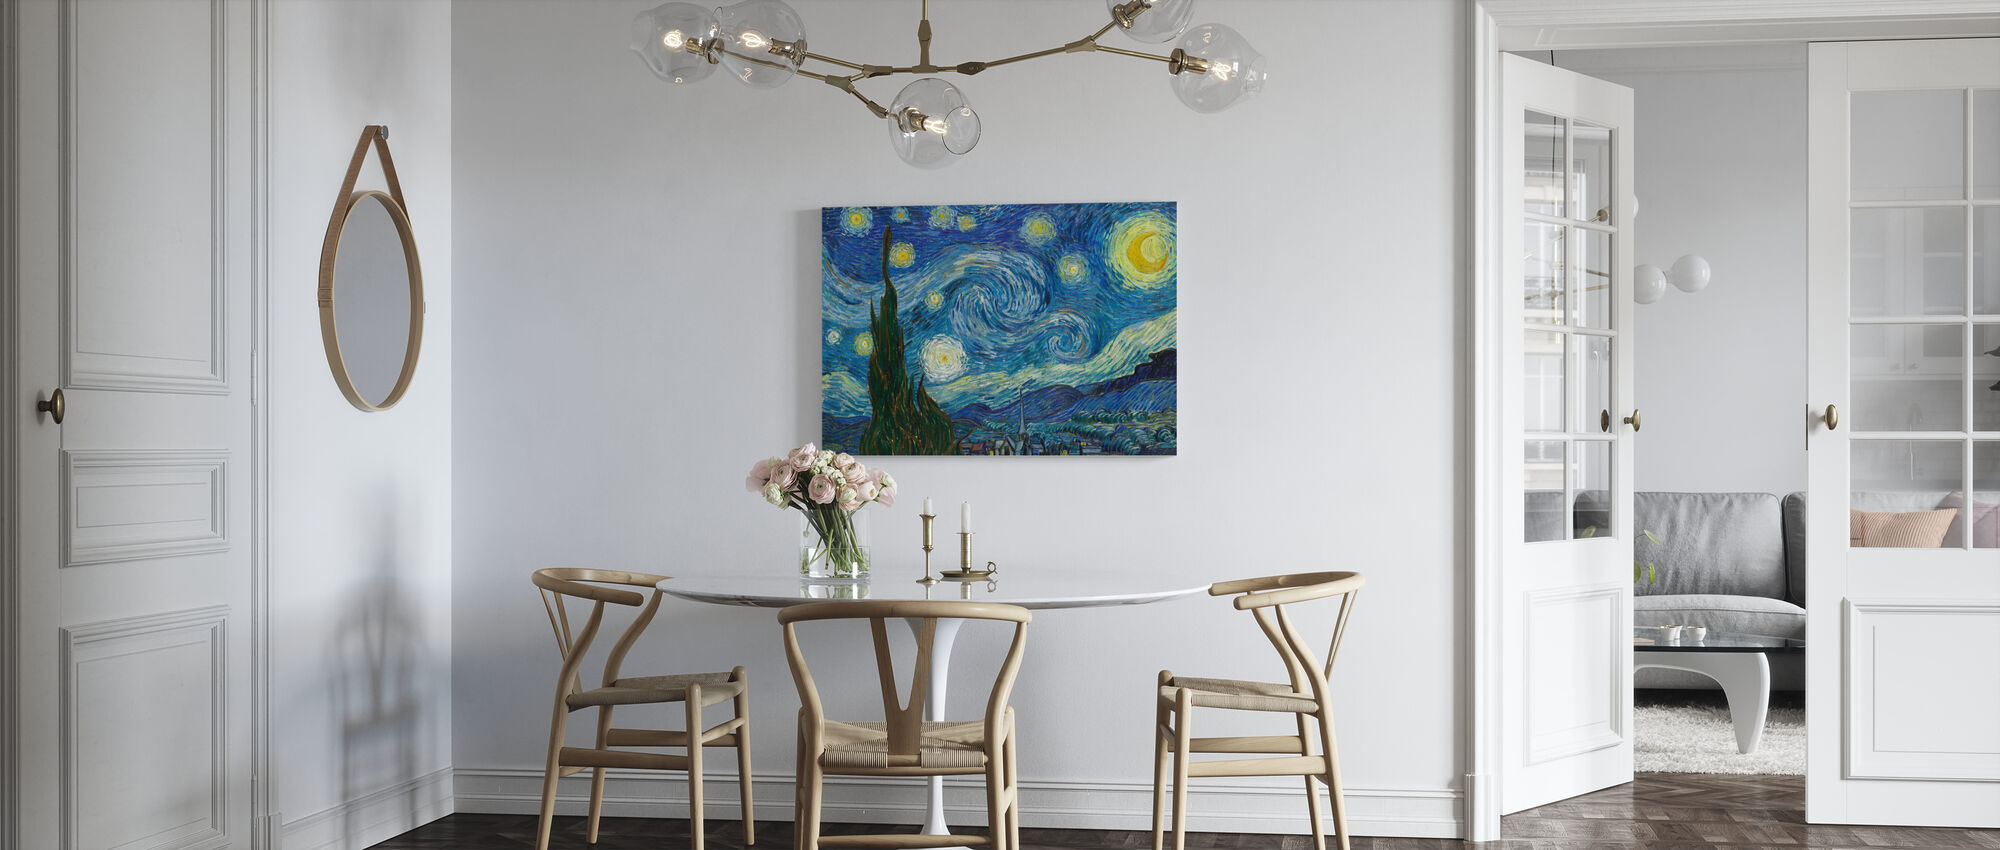 Vincent Van Gogh - Starry Night - Canvastaulu - Keittiö